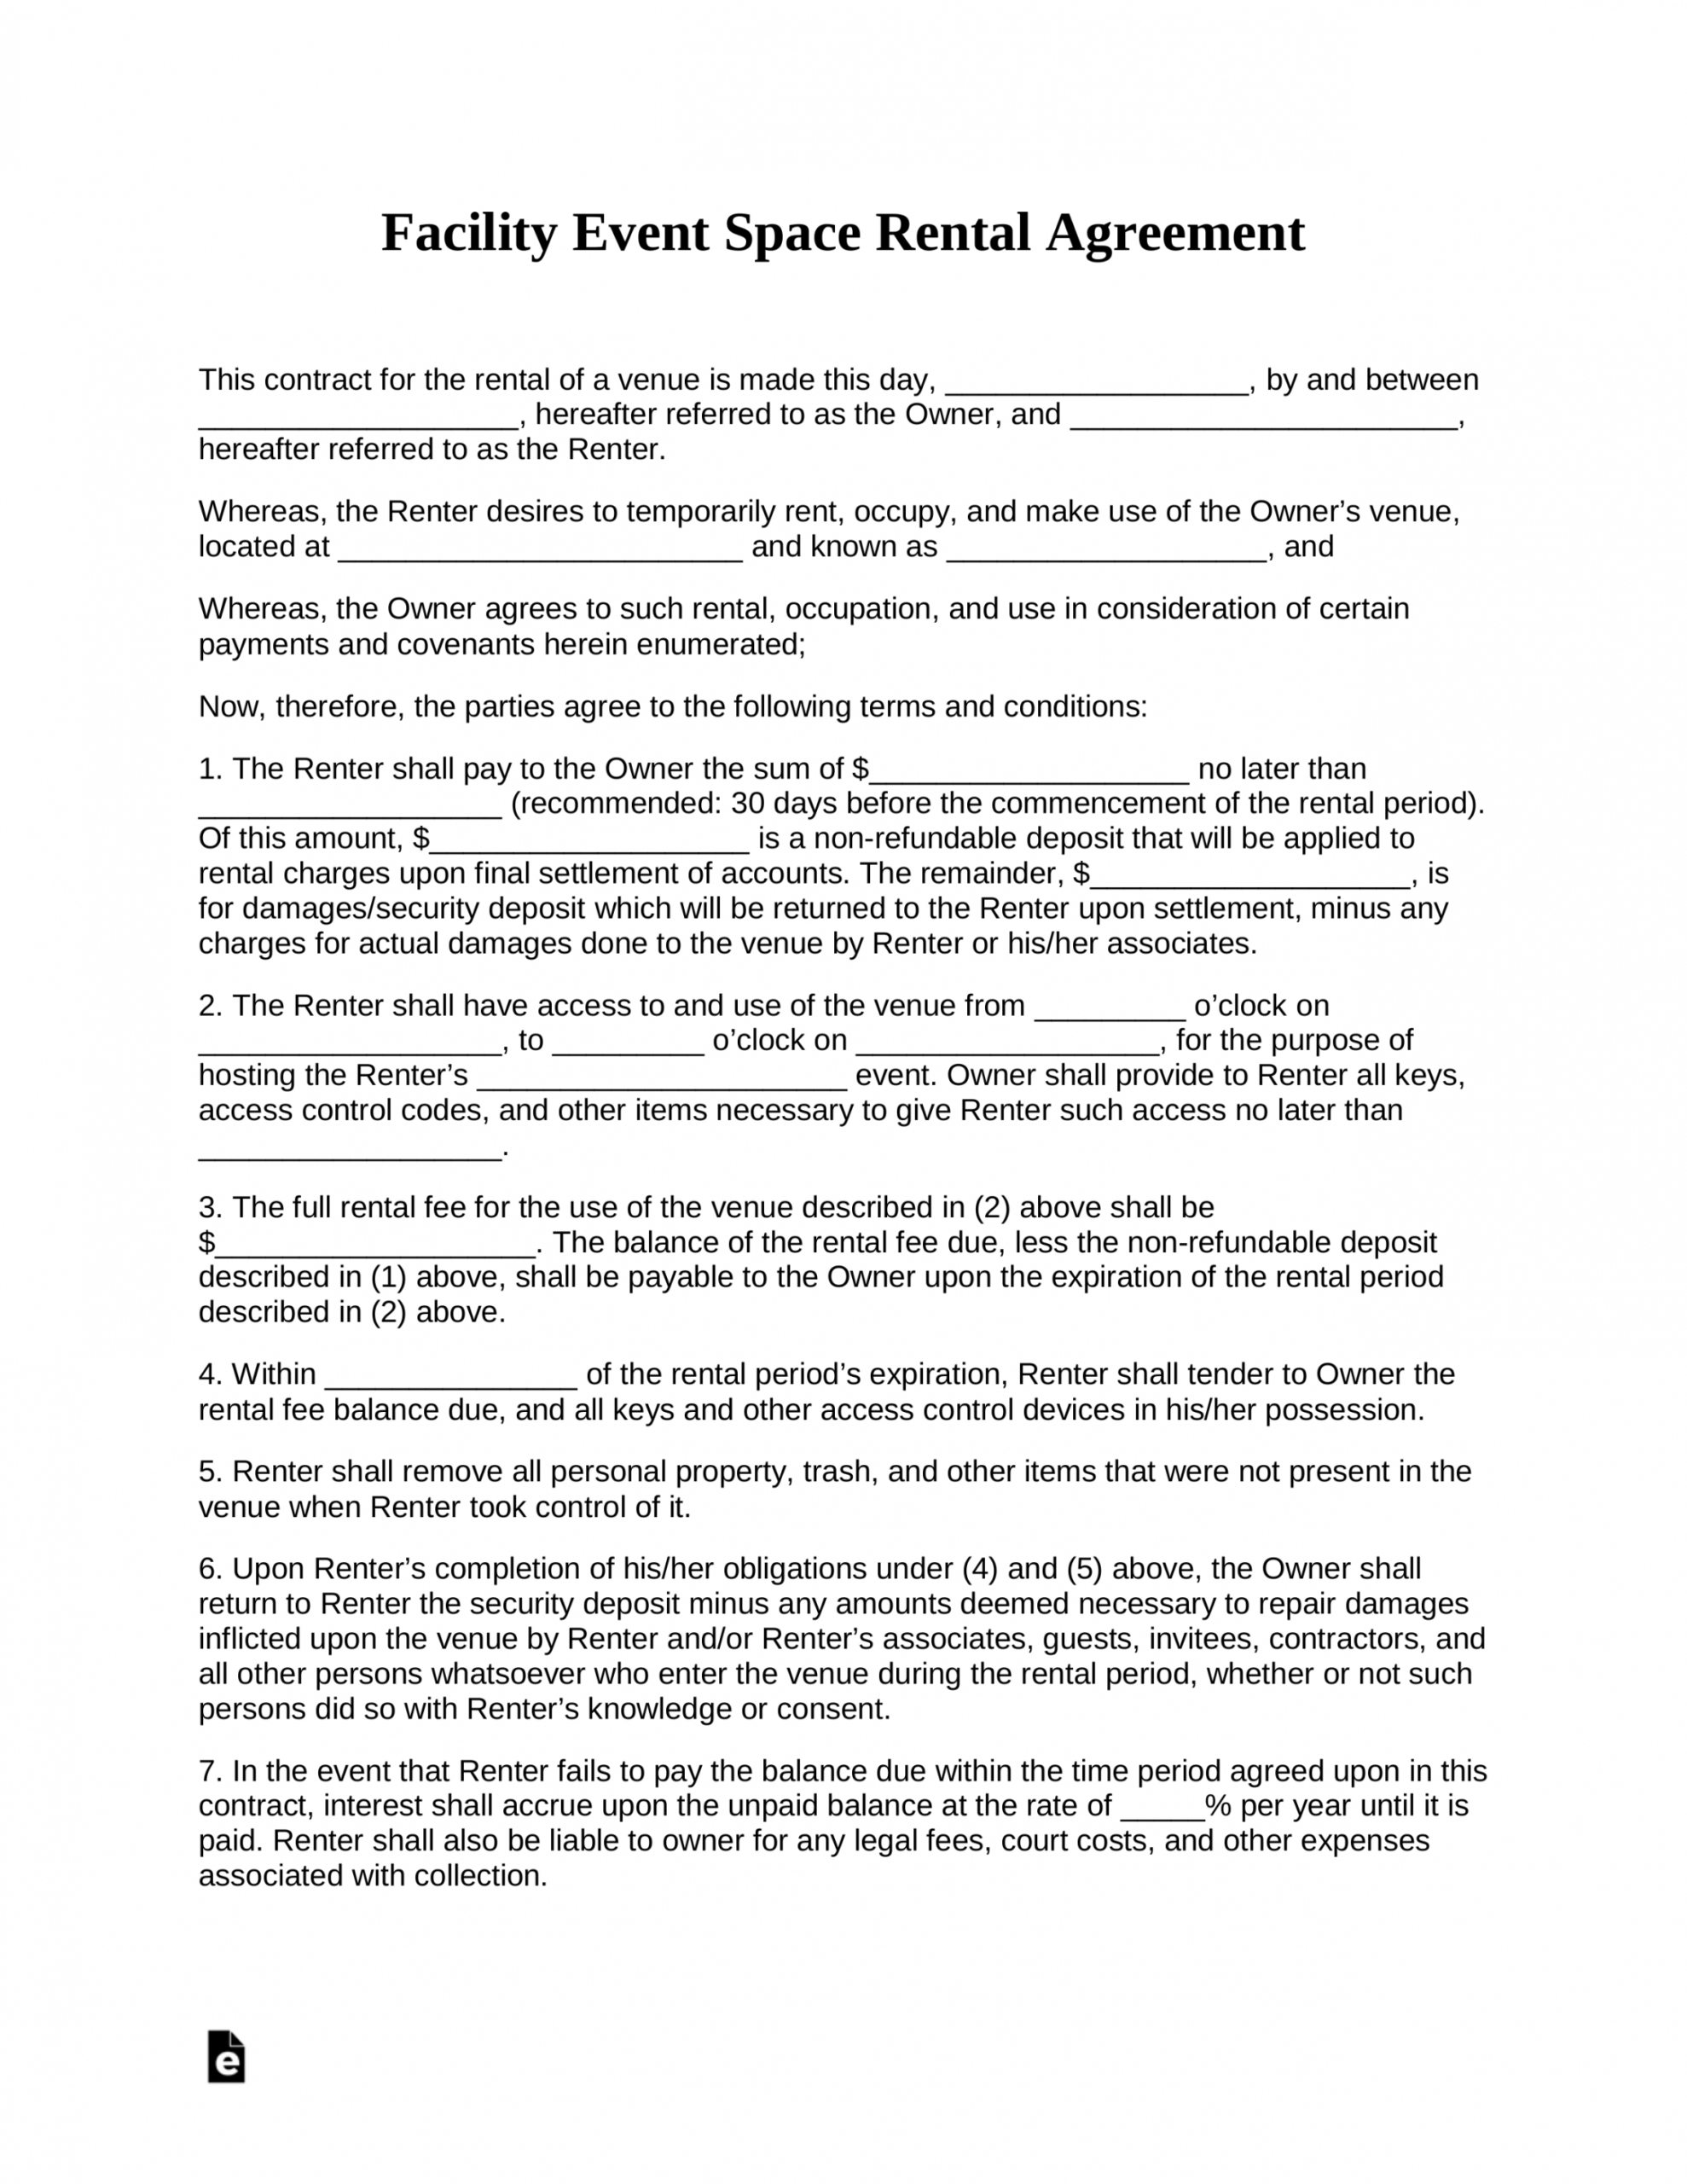 free event facility space rental agreement template  pdf hall rental contract template excel